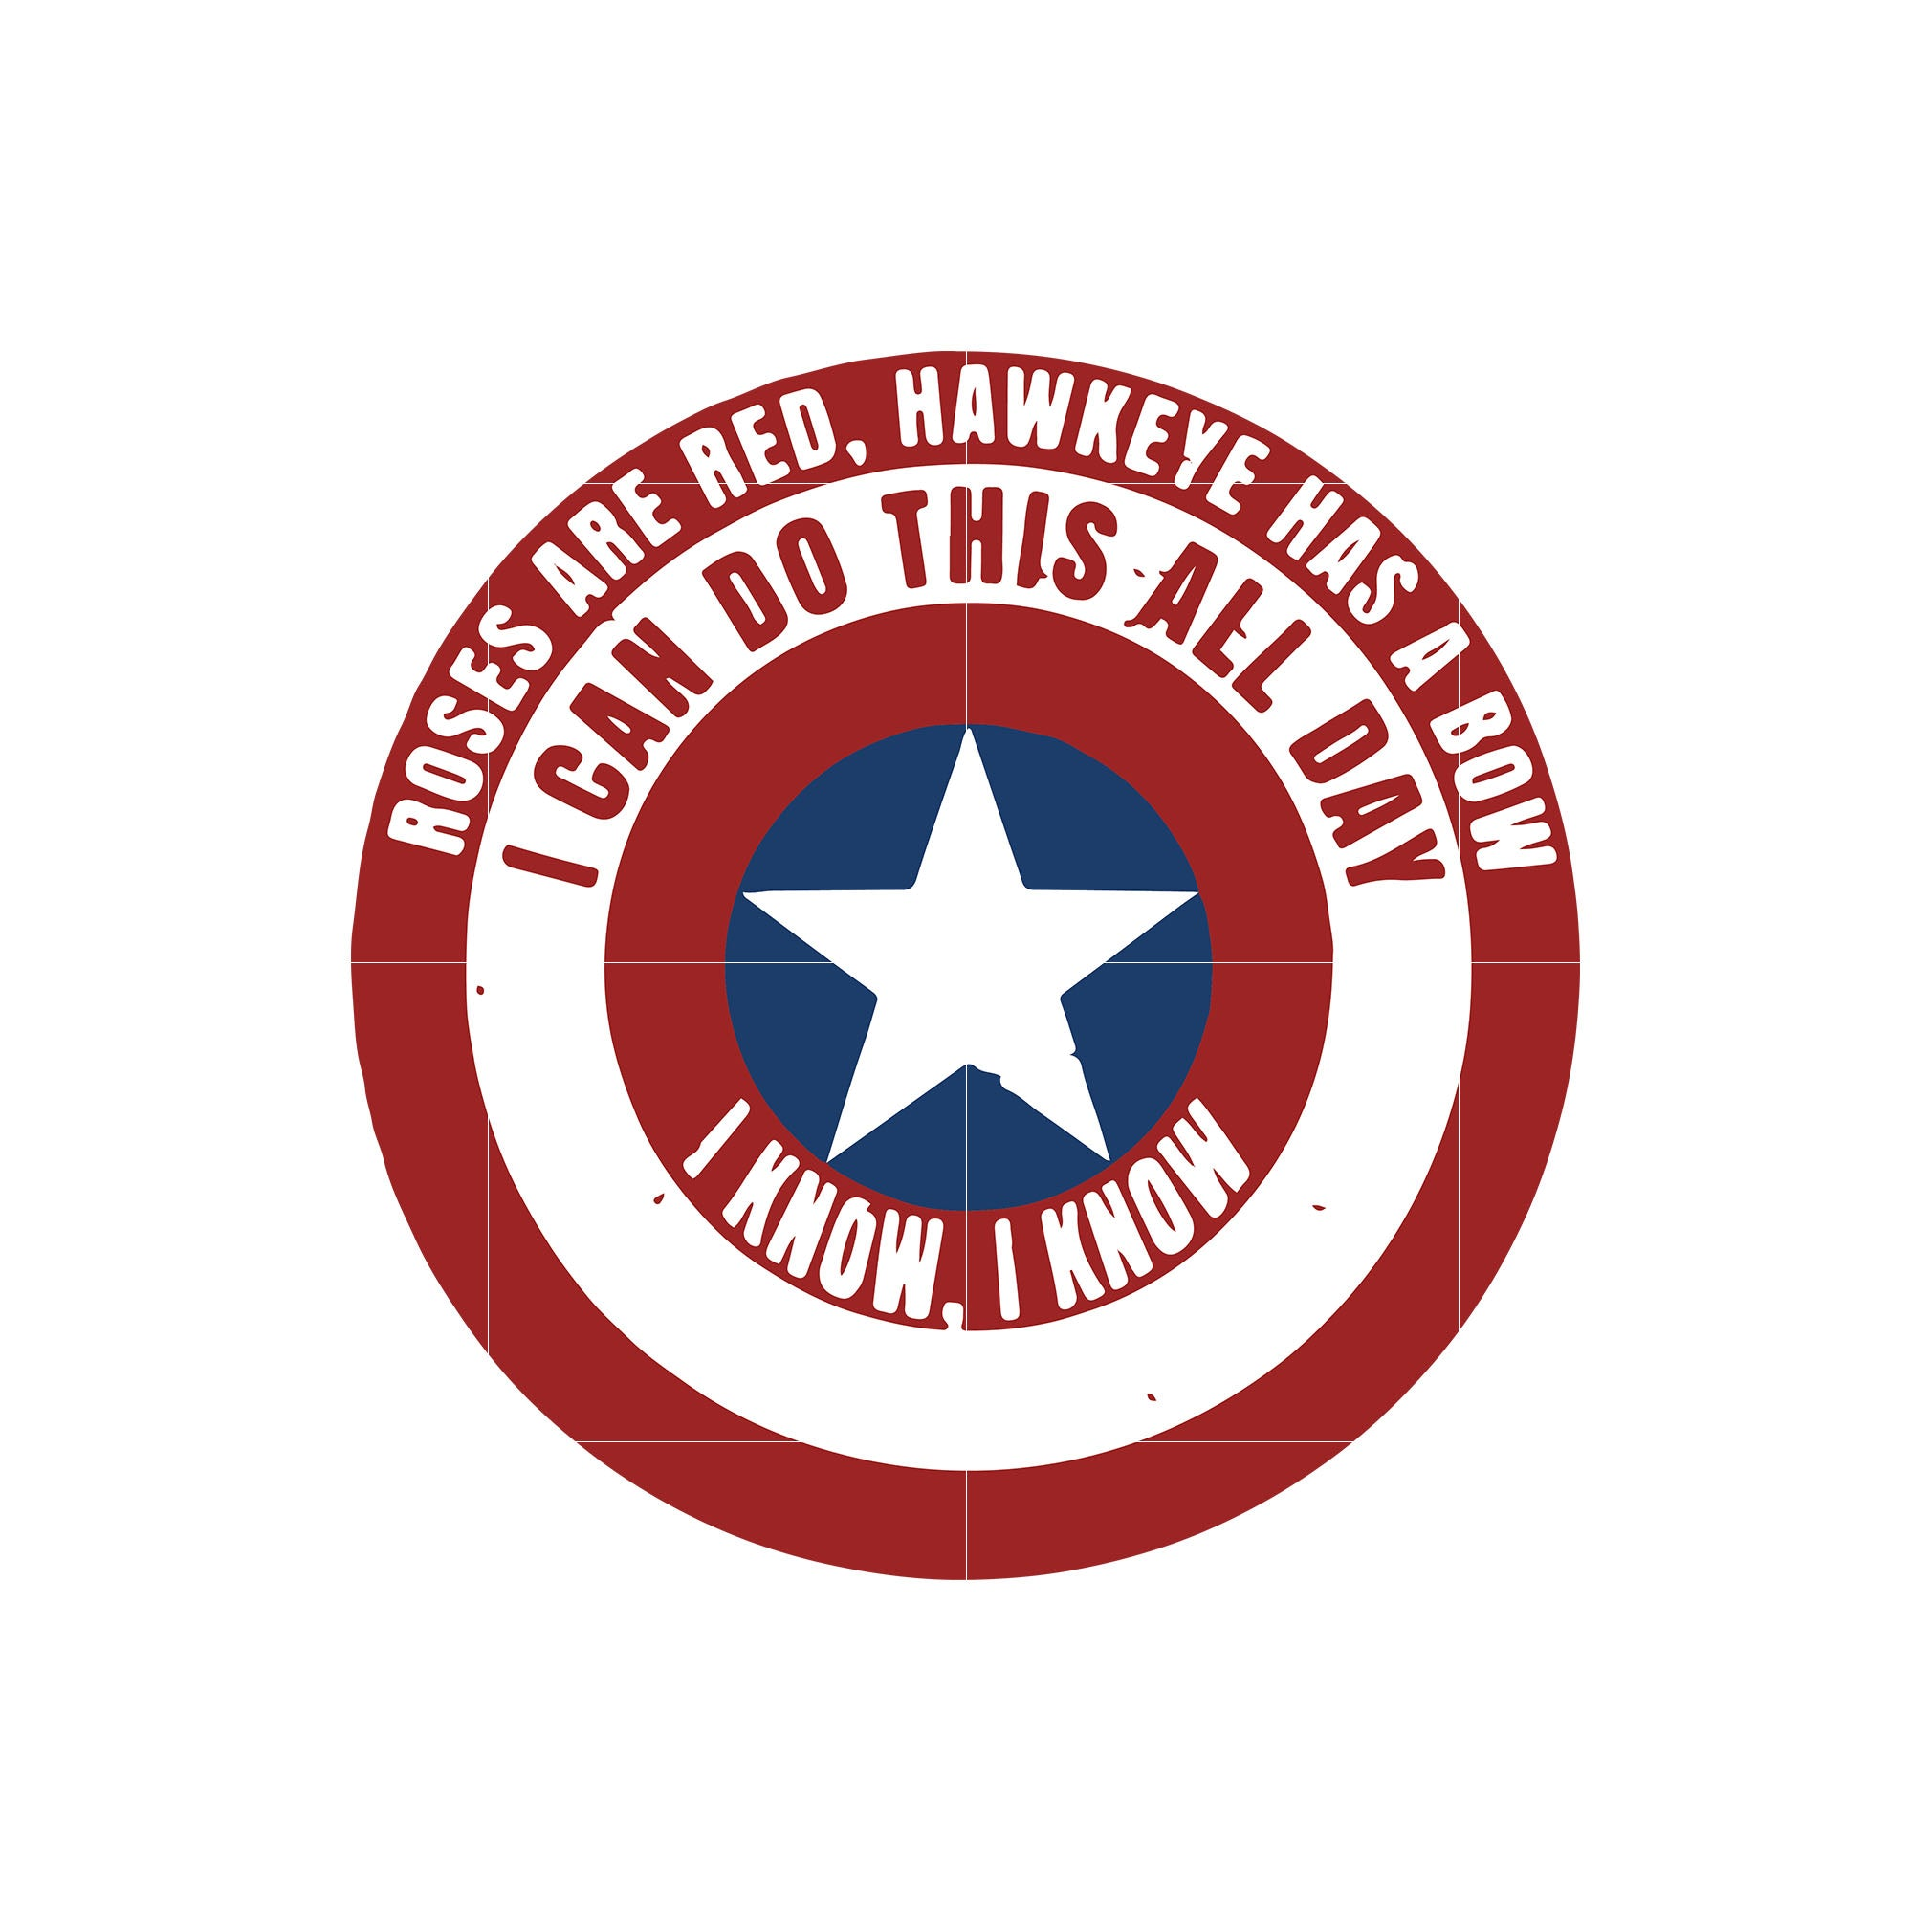 Roses are red hawkeye has a bow i can do this all day i know svg,dxf,eps,png digital file